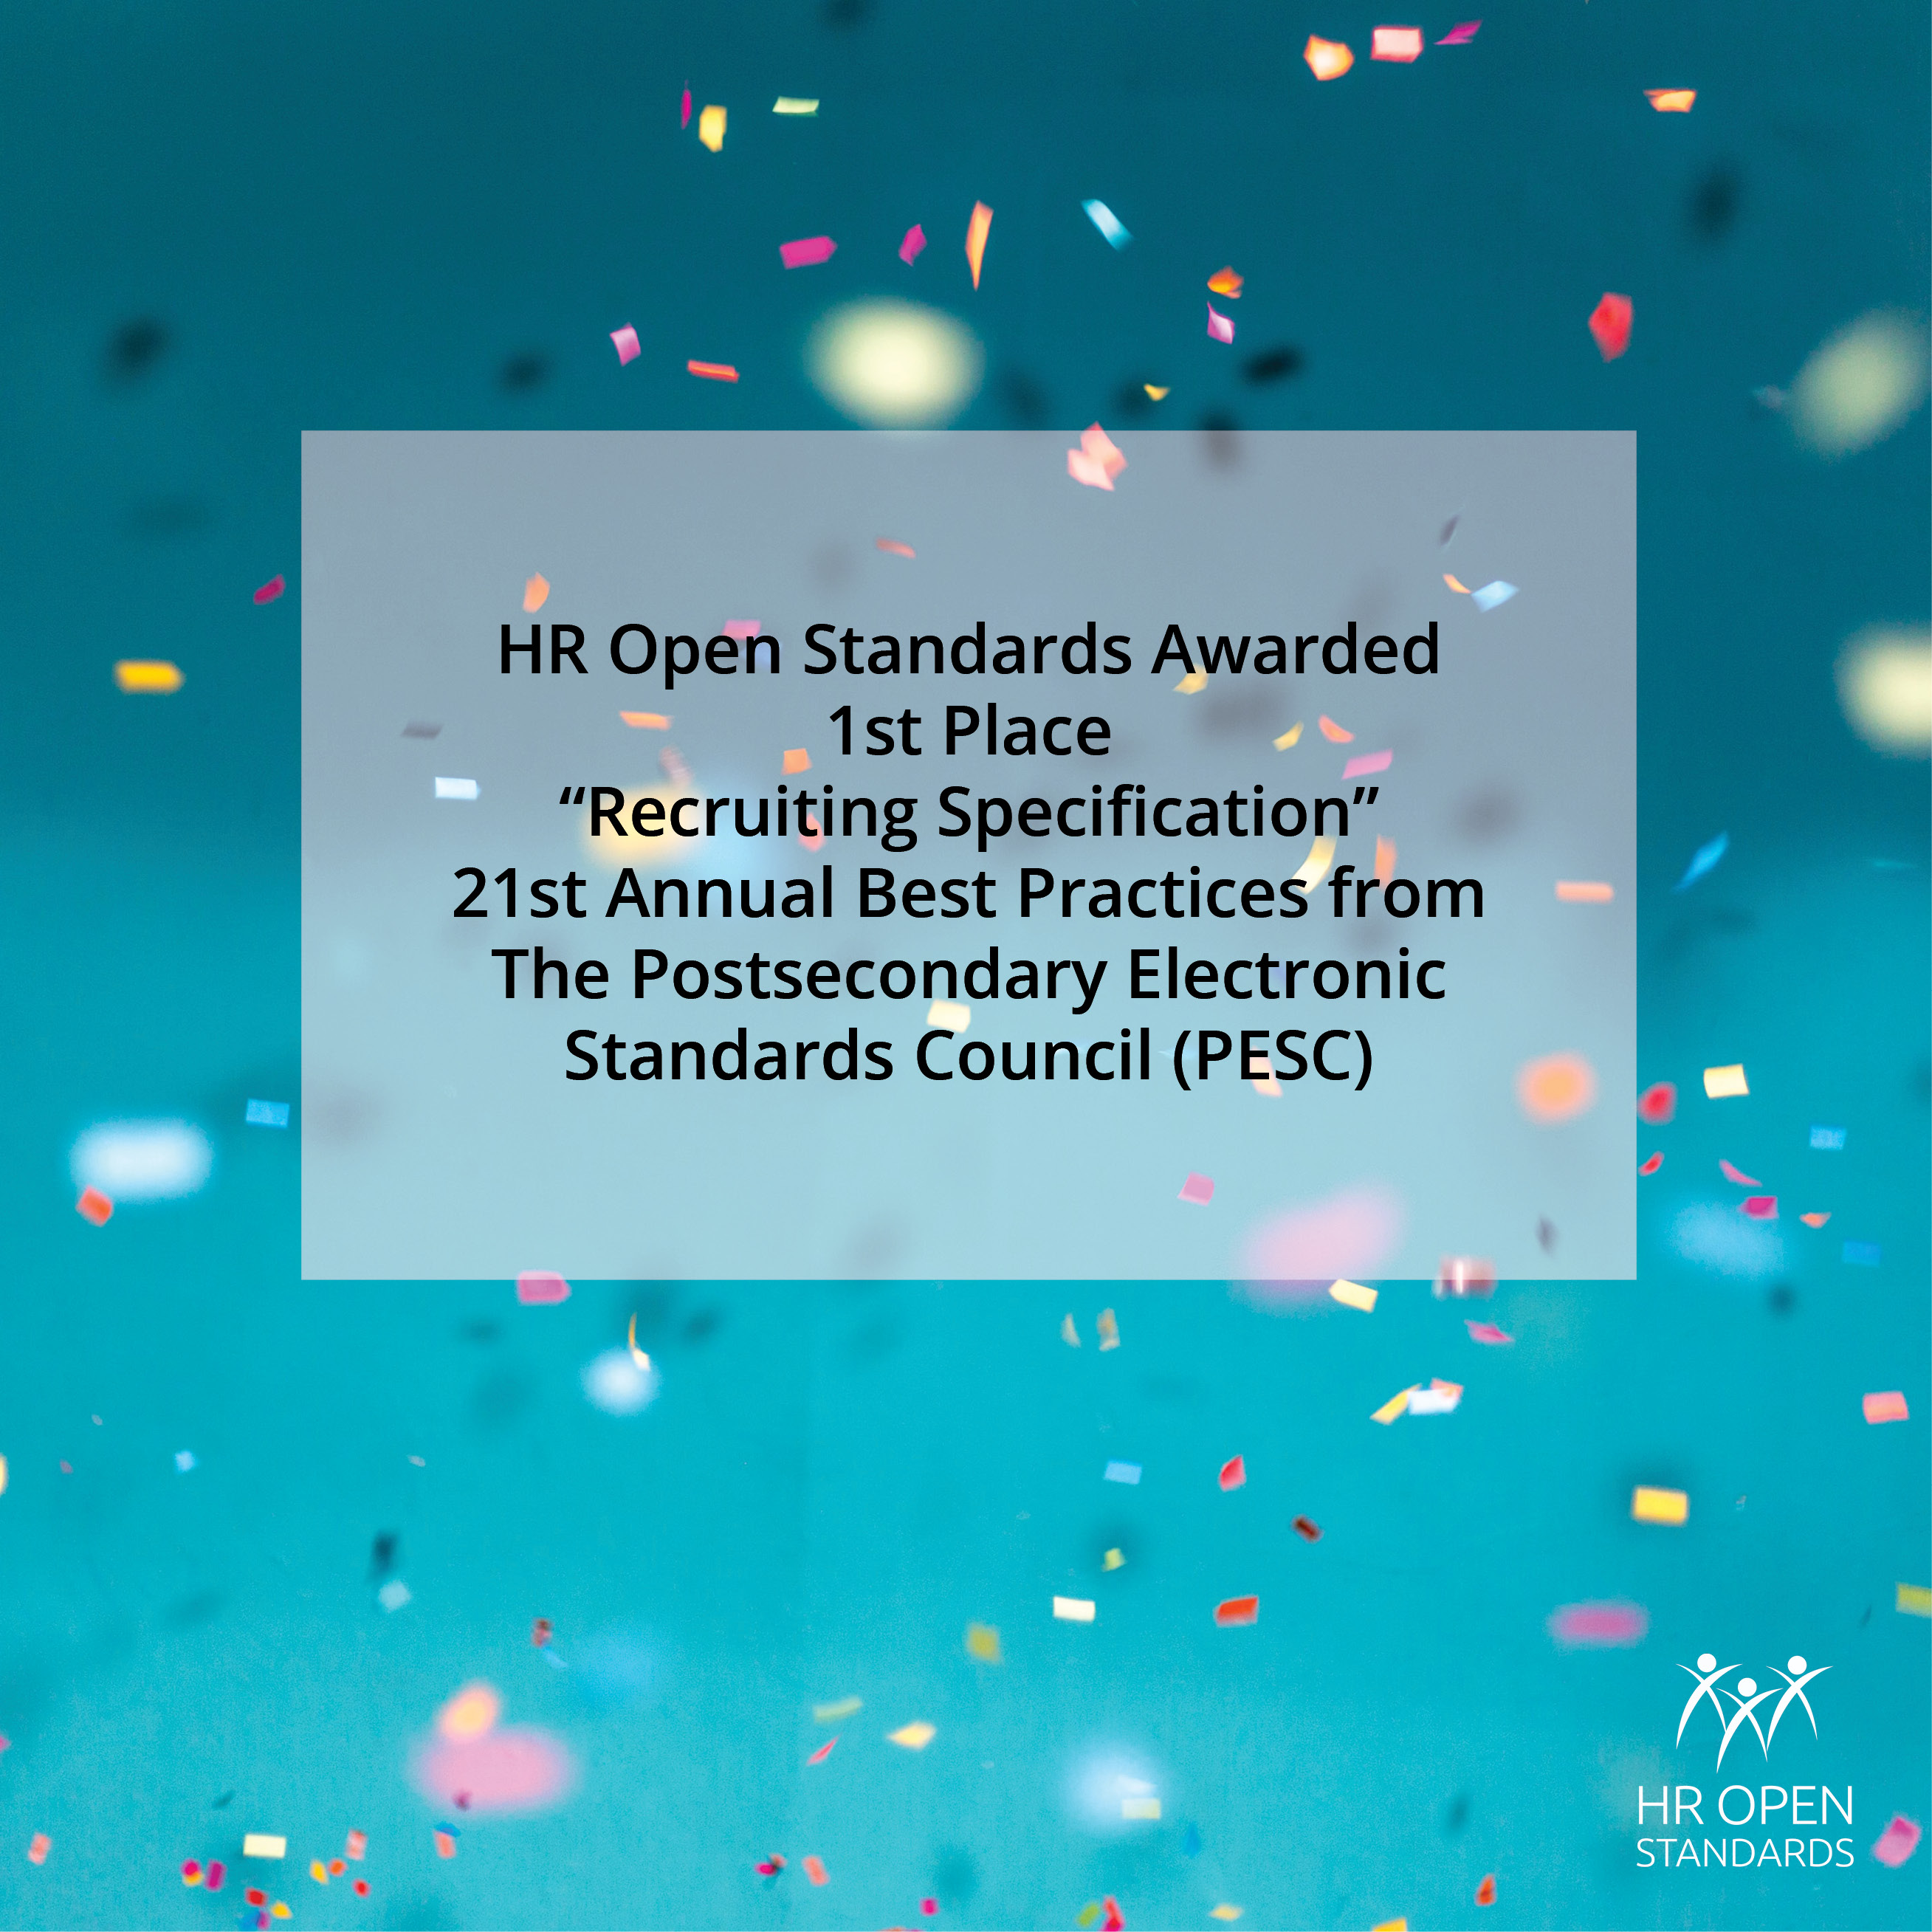 """HR Open Standards Awarded 1st Place """"Recruiting Specification"""" 21st Annual Best Practices from The Postsecondary Electronic Standards Council (PESC)"""